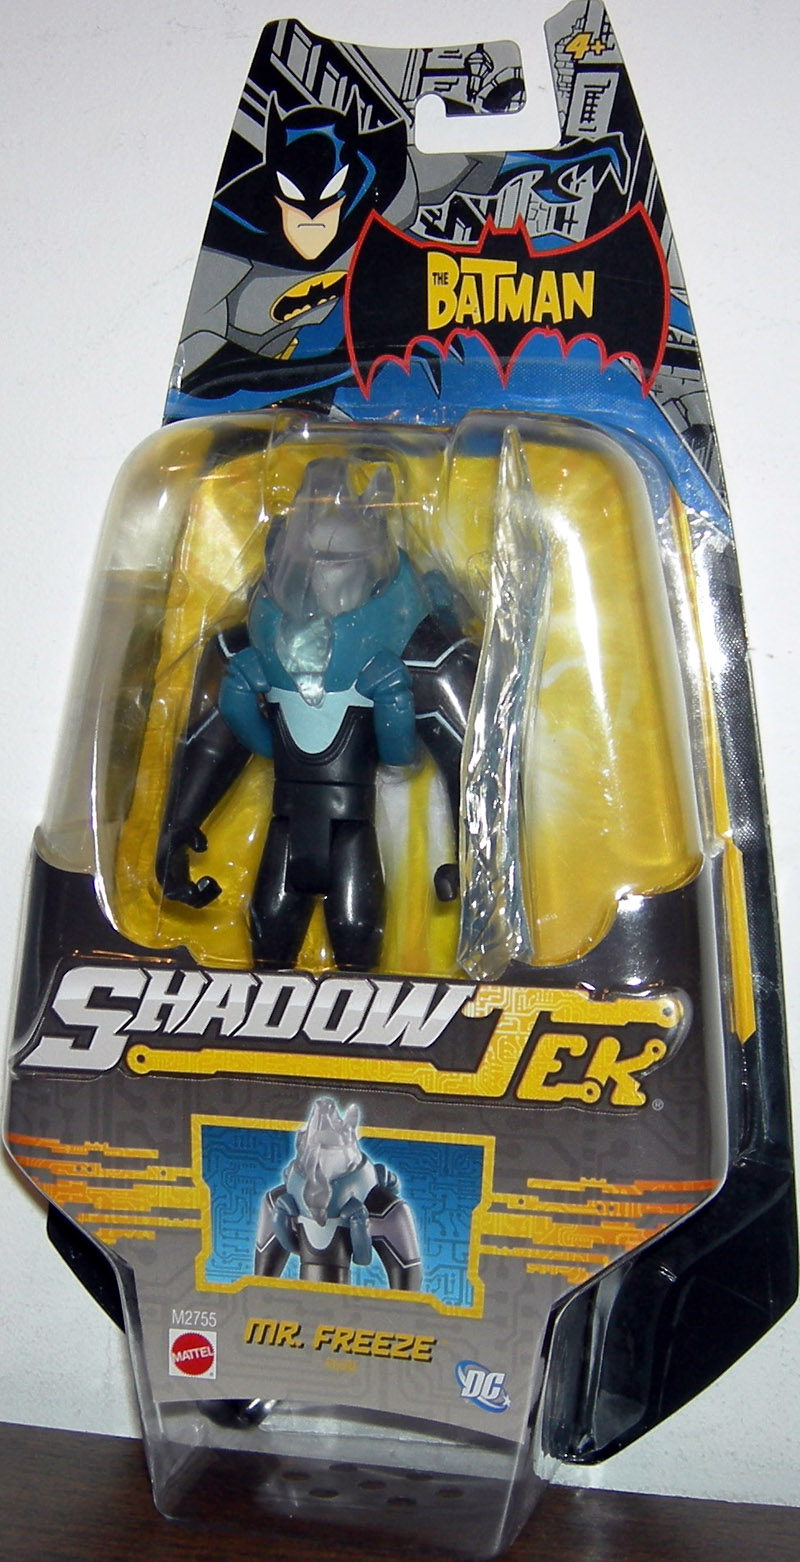 Mr. Freeze (ShadowTek)